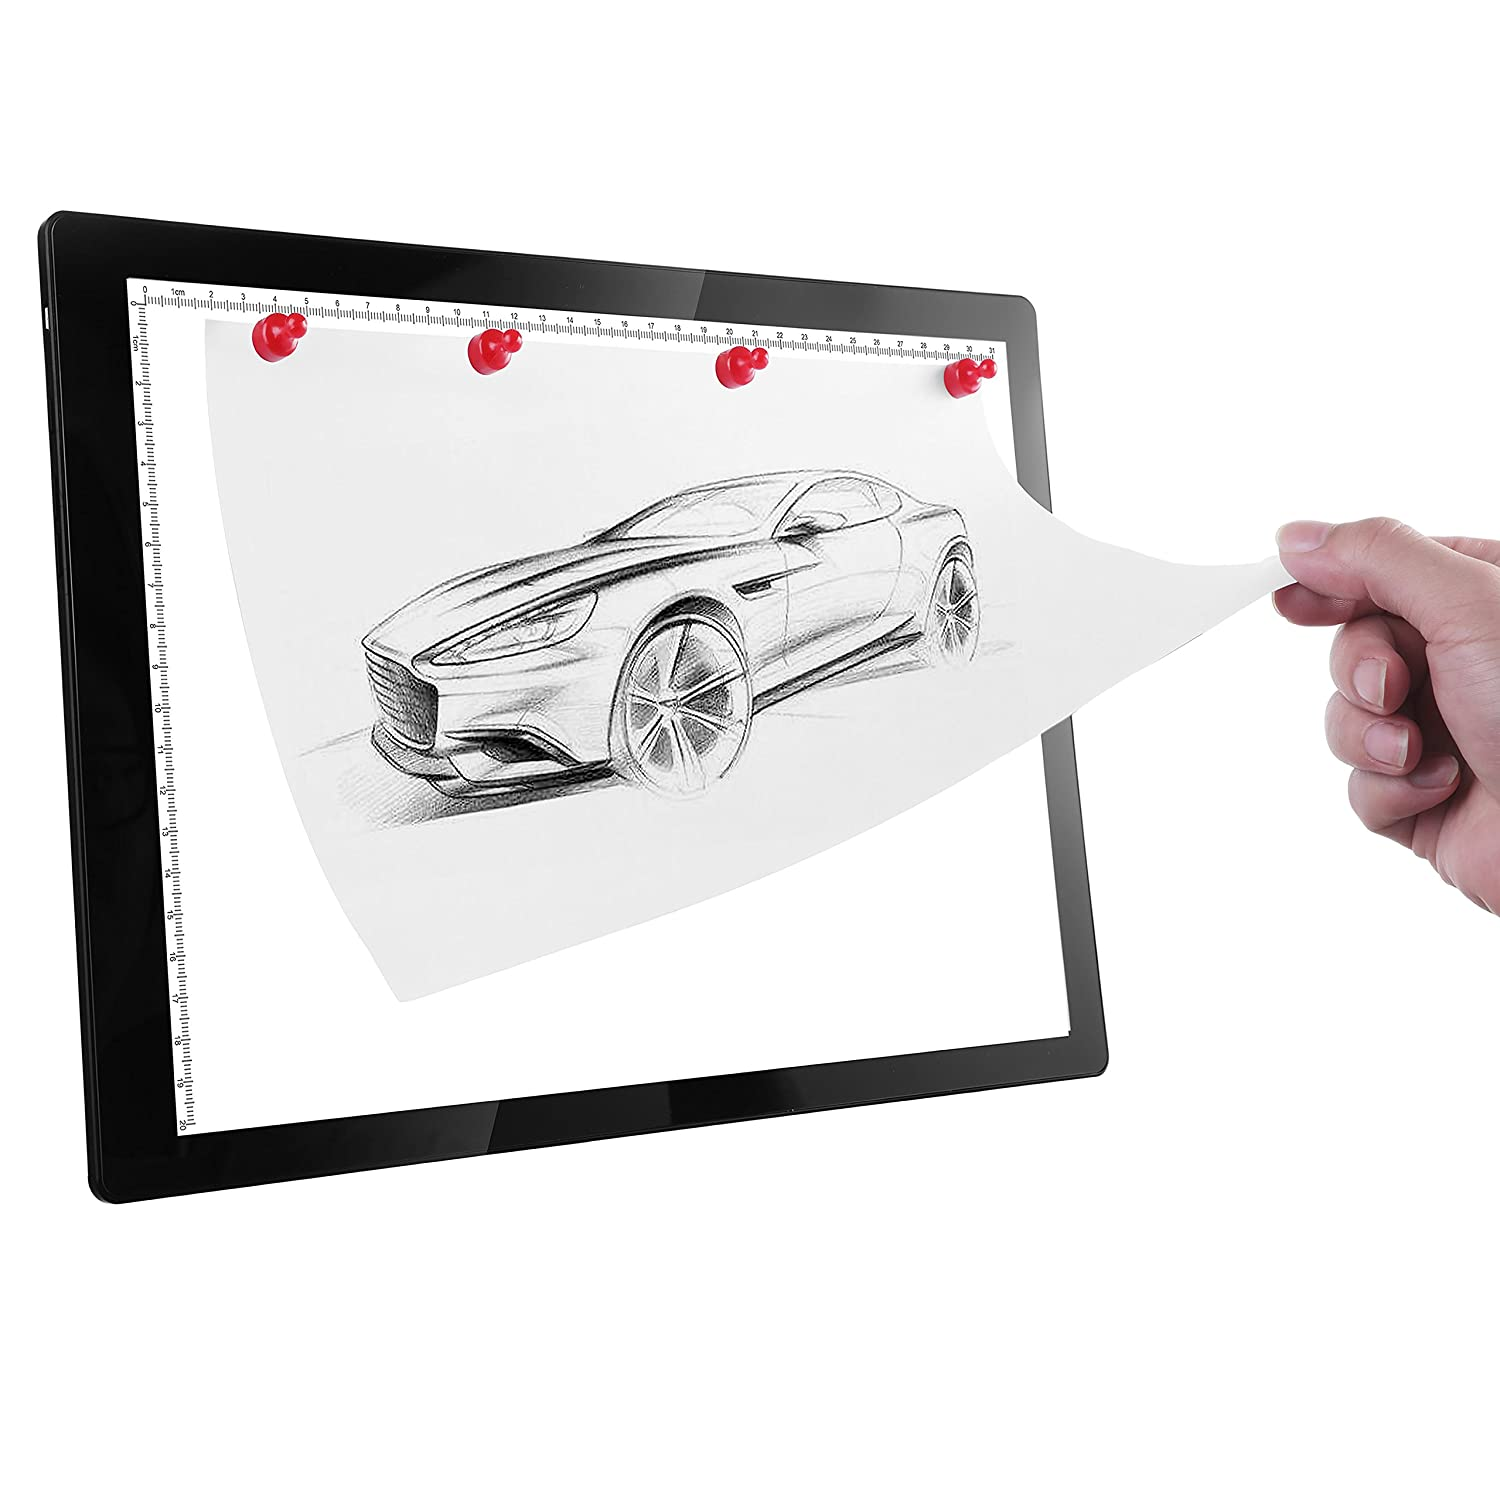 Drawing Tracing Pad Magnetic LED Light Box - New A4 LED Copy Board Artcraft Ultra-Thin Physical Buttons Control with Memory Function, Powered USB Adapter for Gifts (A4, Black(Buttons Type)) EIKAI